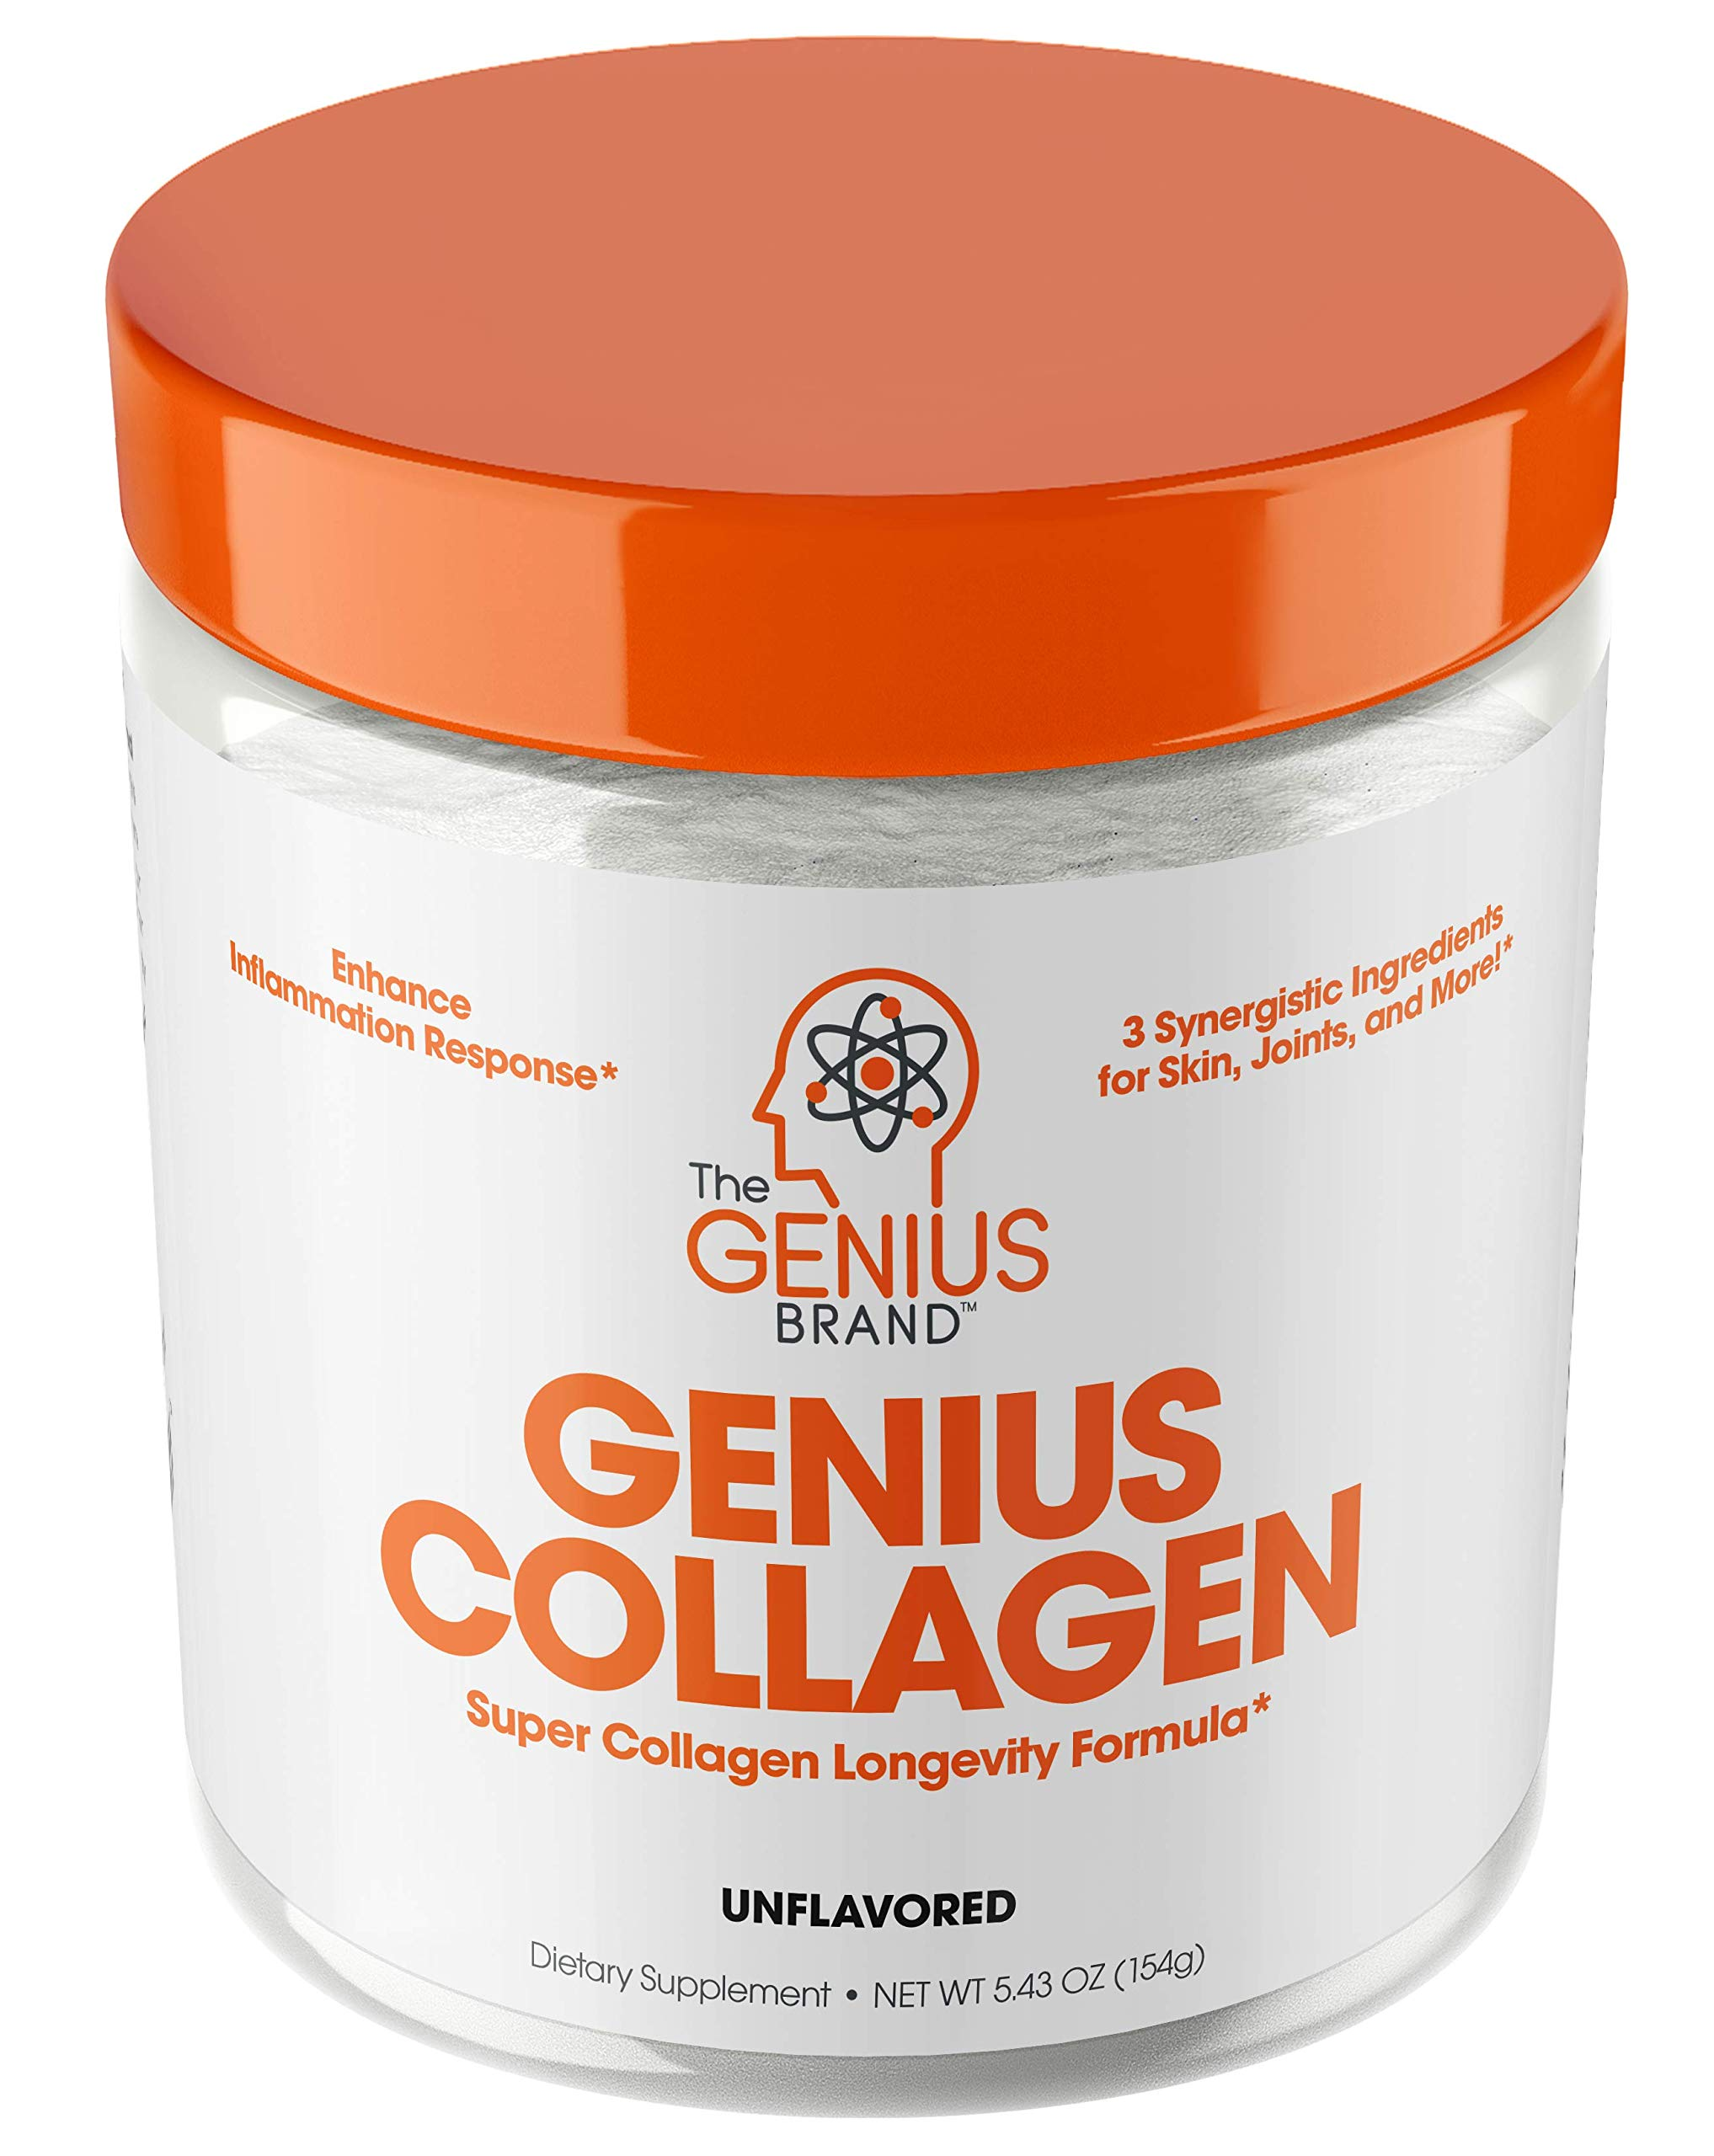 Collagen Peptides Powder - Hydrolyzed Collagen Protein Powder, Grass Fed for Hair Growth Skin Nails Joints; Post Workout Hydrolysate Collagen Supplements for Women & Men, Organic Non-GMO, Unflavored